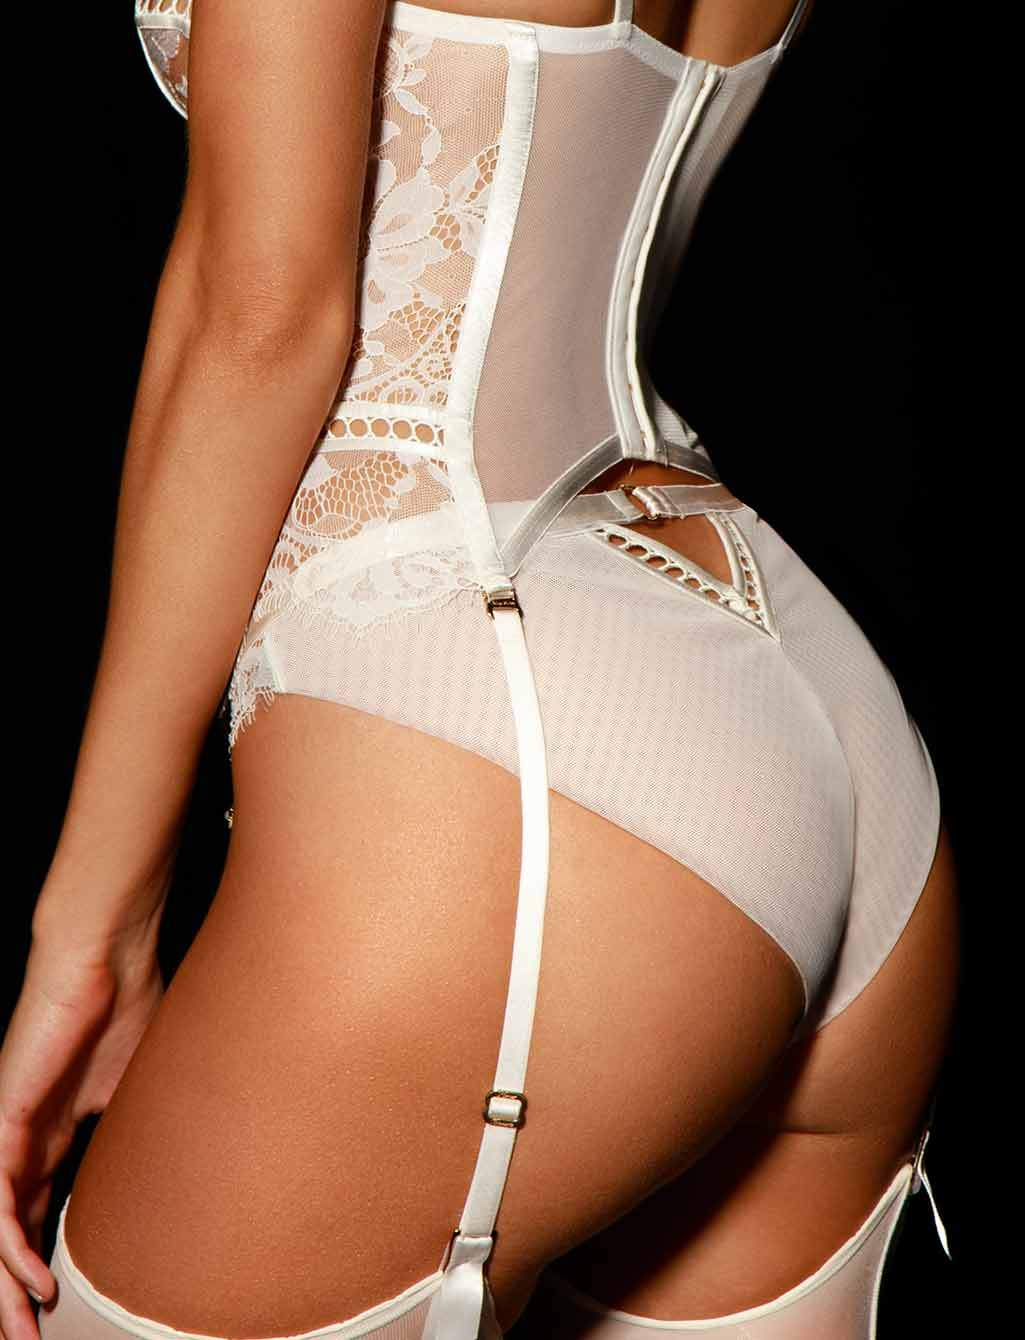 Molly Ivory Bustier Corset Honey Birdette